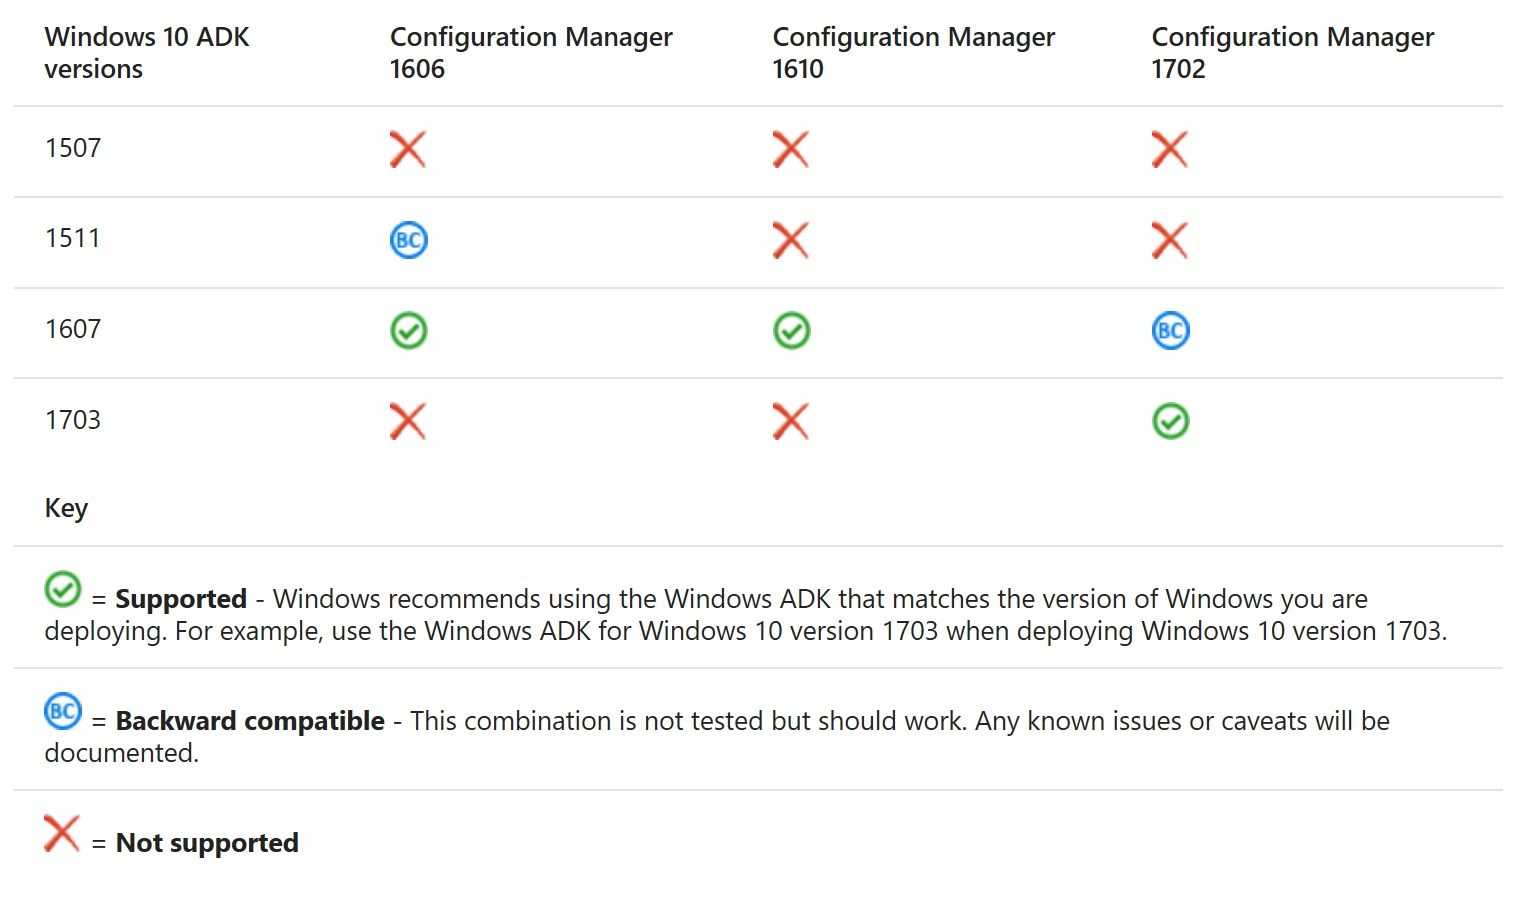 How to Update Windows ADK on a SCCM Server